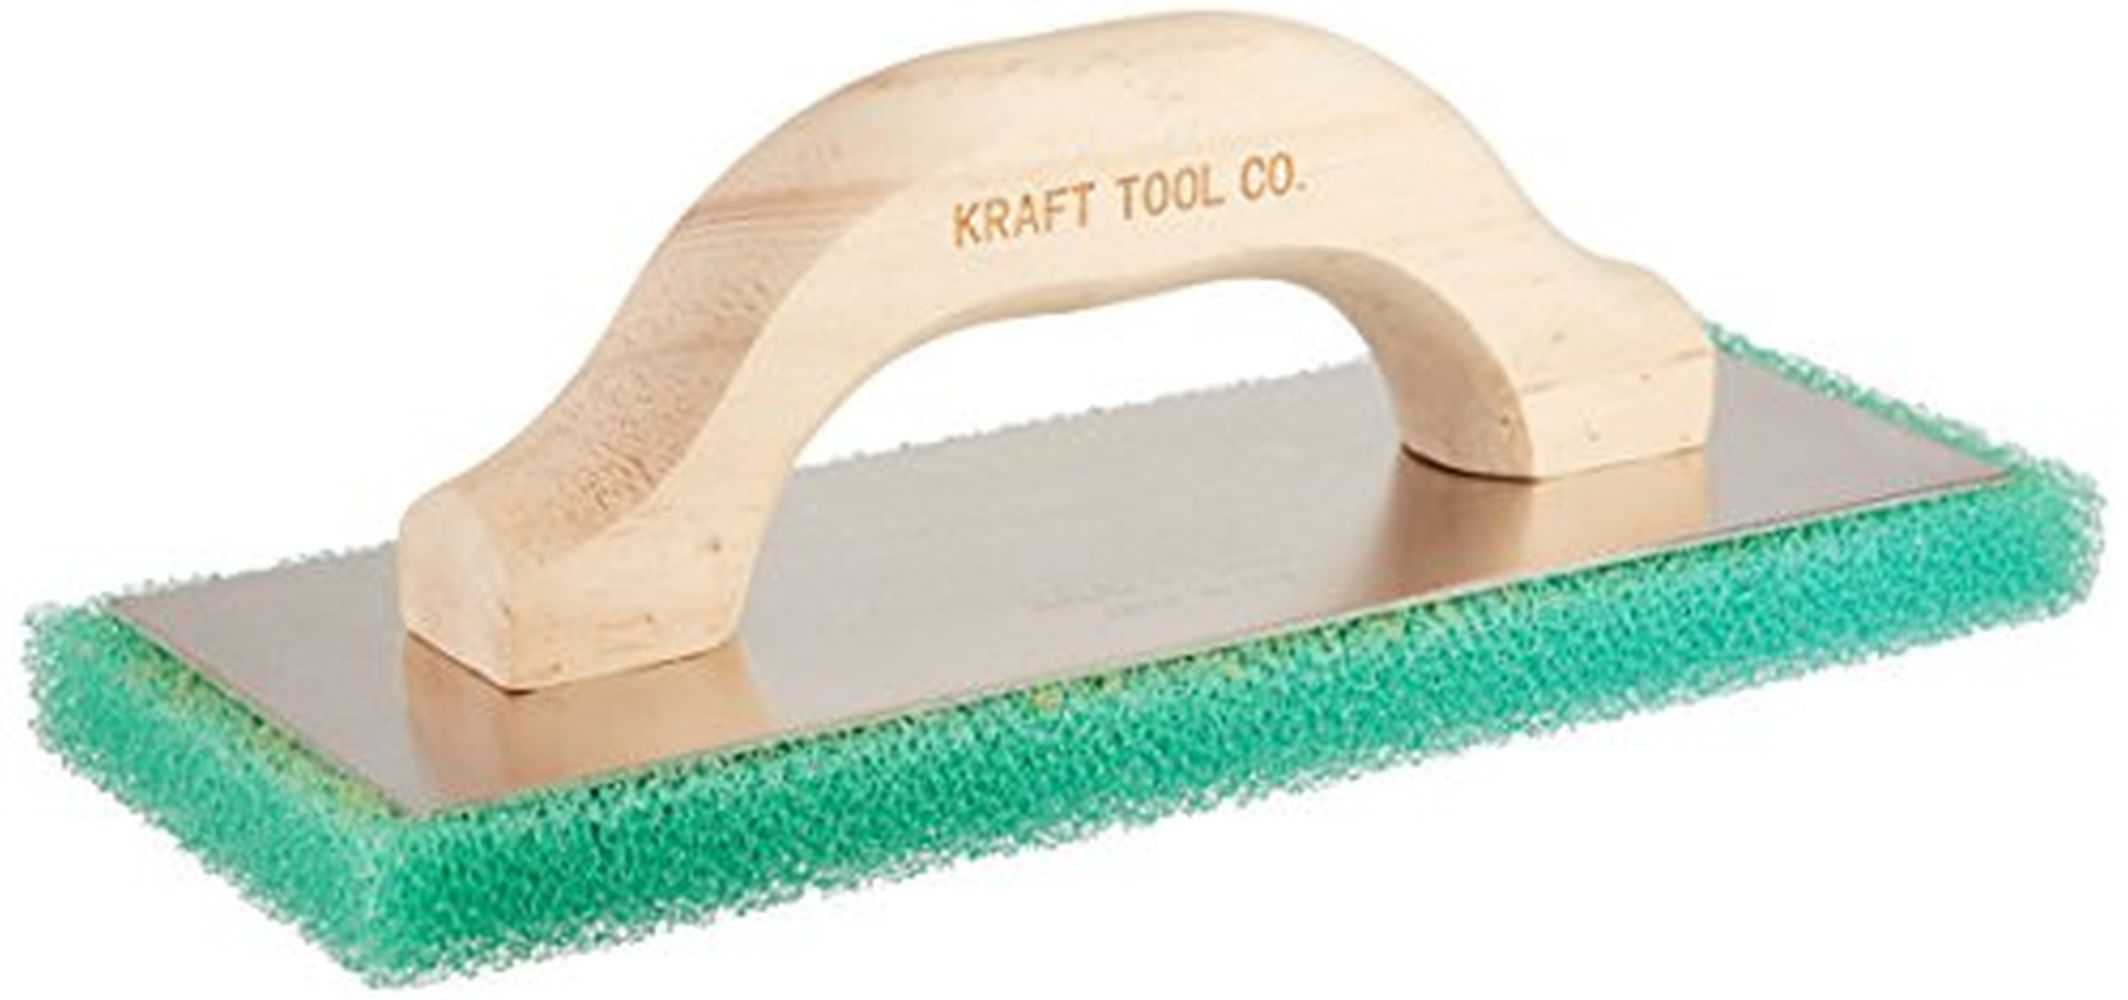 Kraft PL602 Green Coarse Texture Float w/Wood Handle,10x4x3/4'